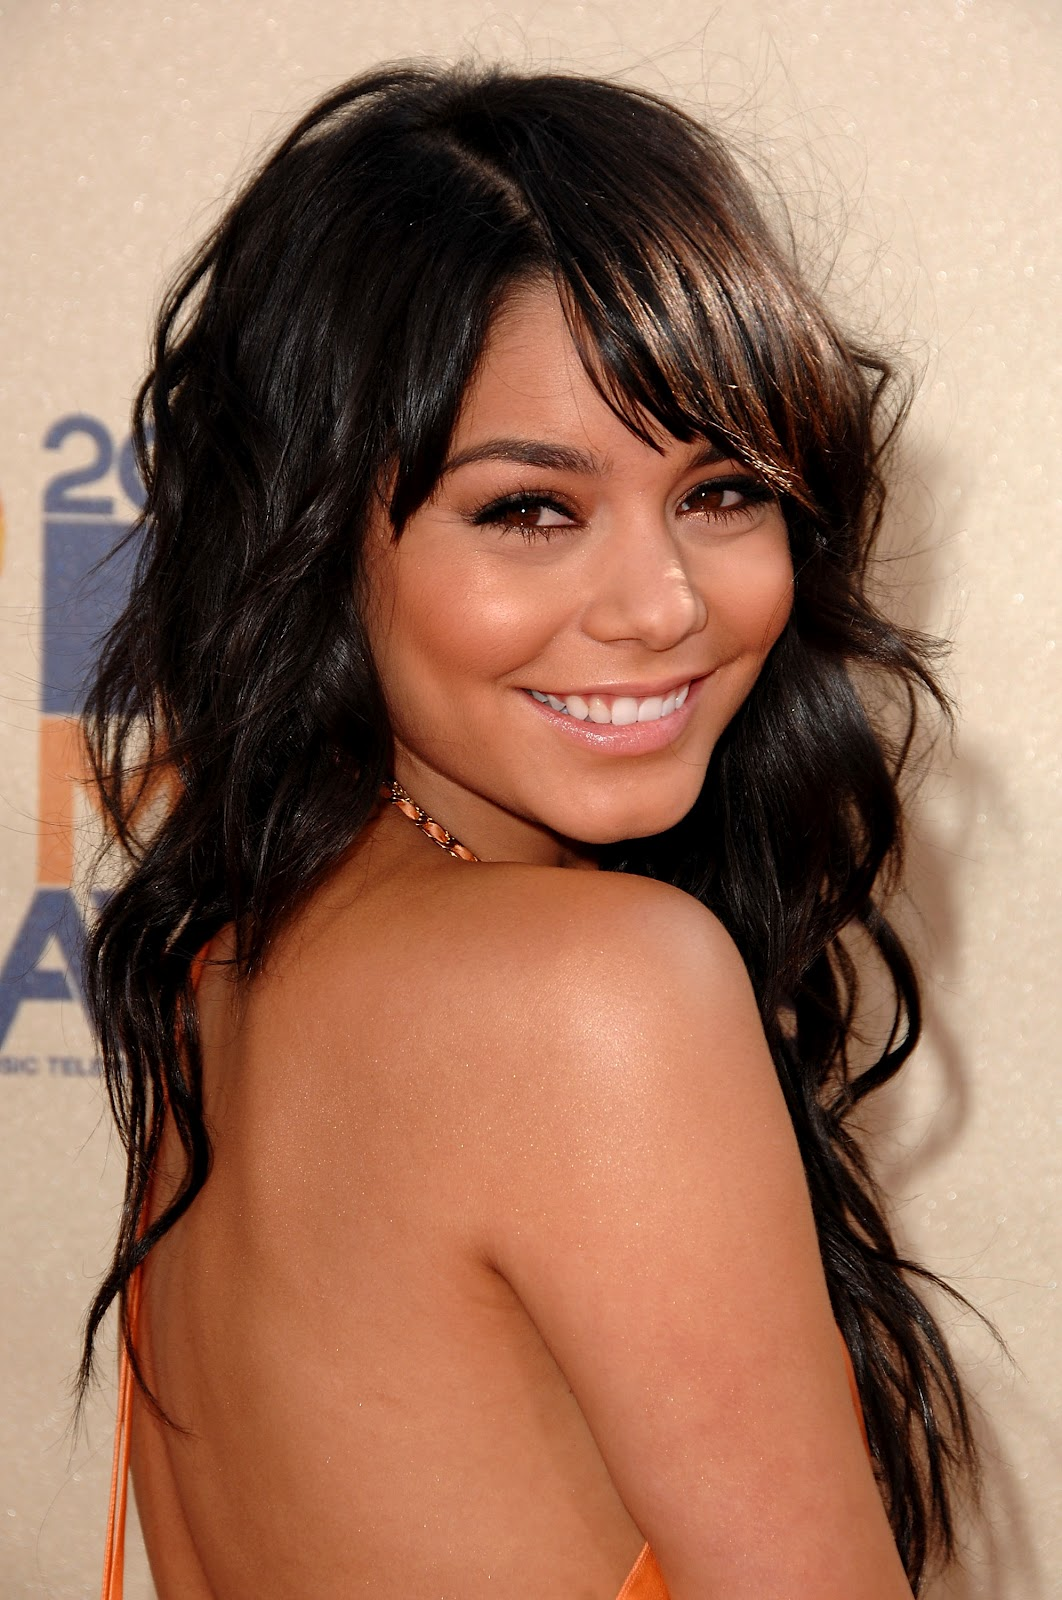 http://2.bp.blogspot.com/-d_CH4vvZV4g/Ty6s1KthL2I/AAAAAAAAEwU/xEj_7NvEZx8/s1600/44705-vanessa-hudgens-at-2009-mtv-video-awards-619.jpg